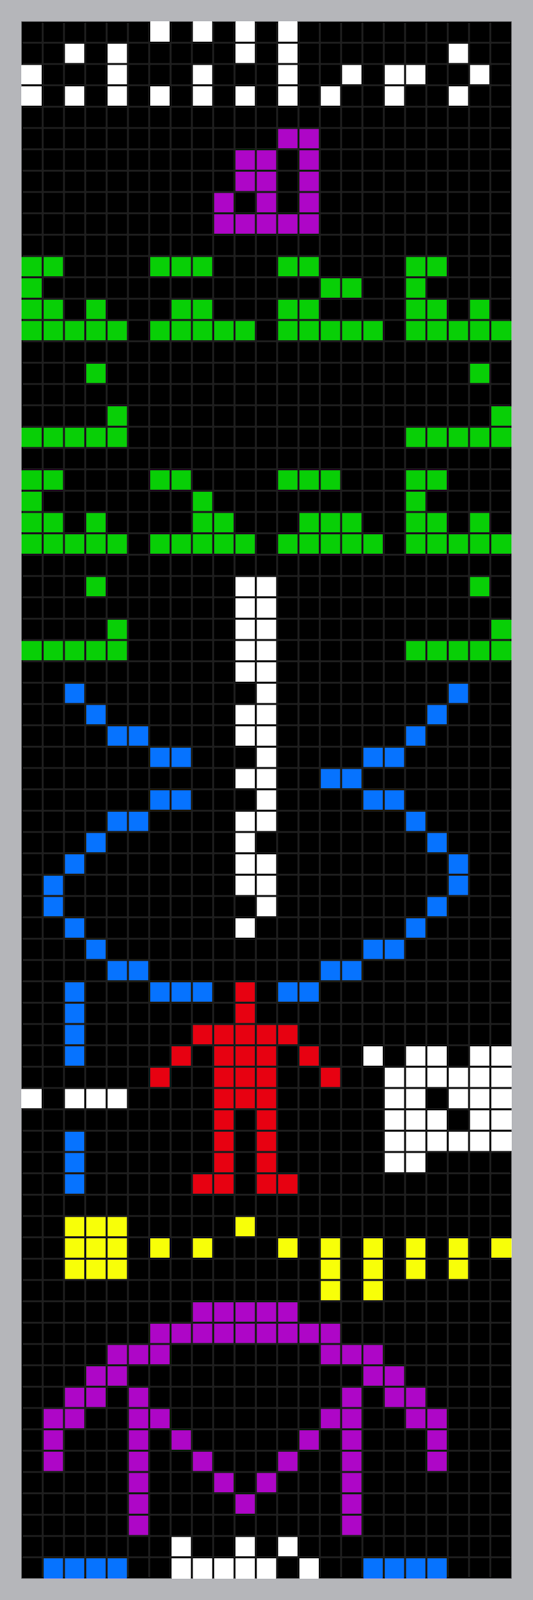 A pictoral representation of the Arecibo message, containing binary numbers, chemical formulas, a DNA strand, a human figure, representation of the solar system and image of the telescope.